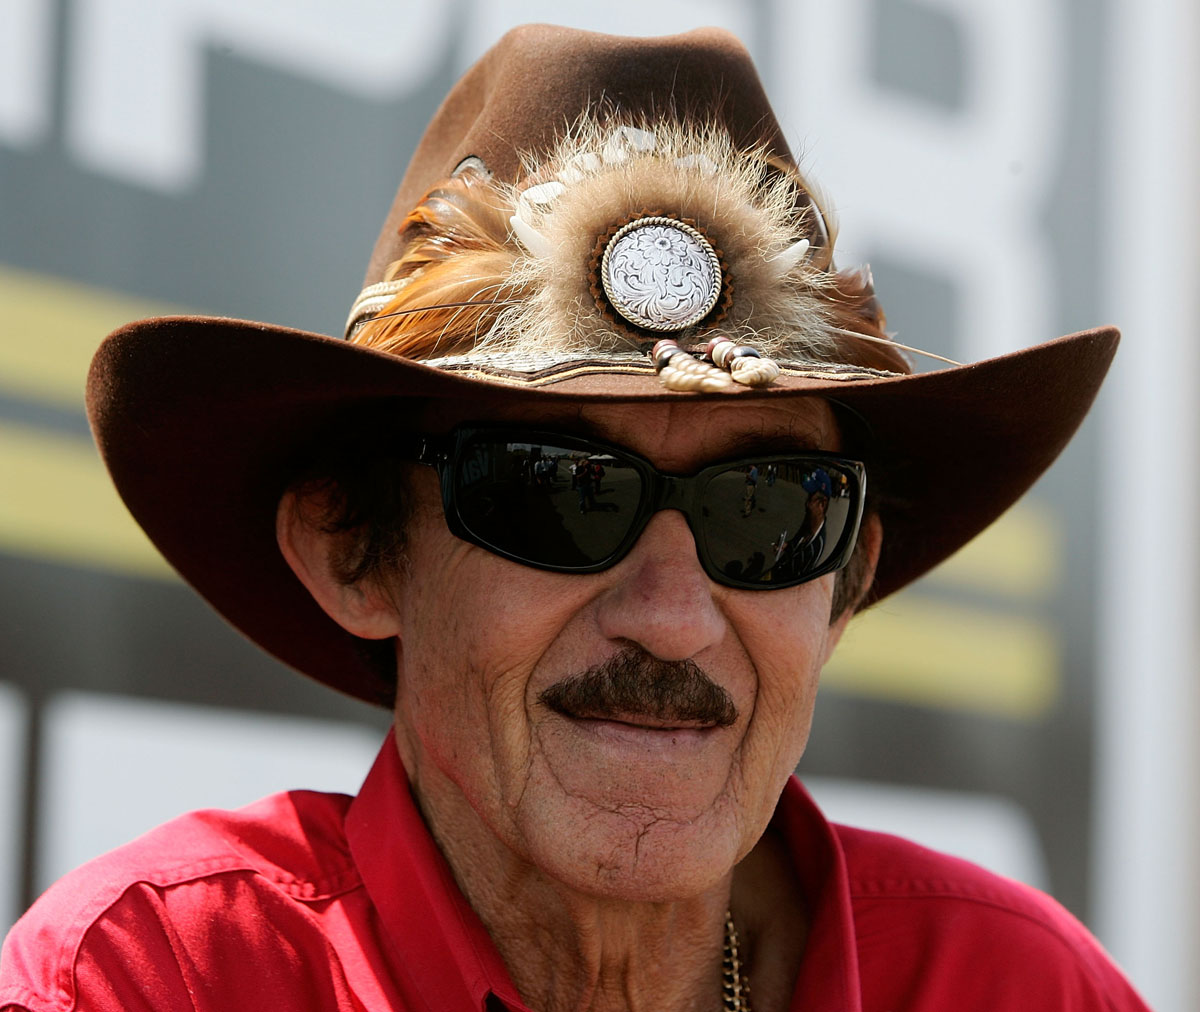 WHAT DO RICHARD PETTY AND BERT CONVY HAVE IN COMMON?